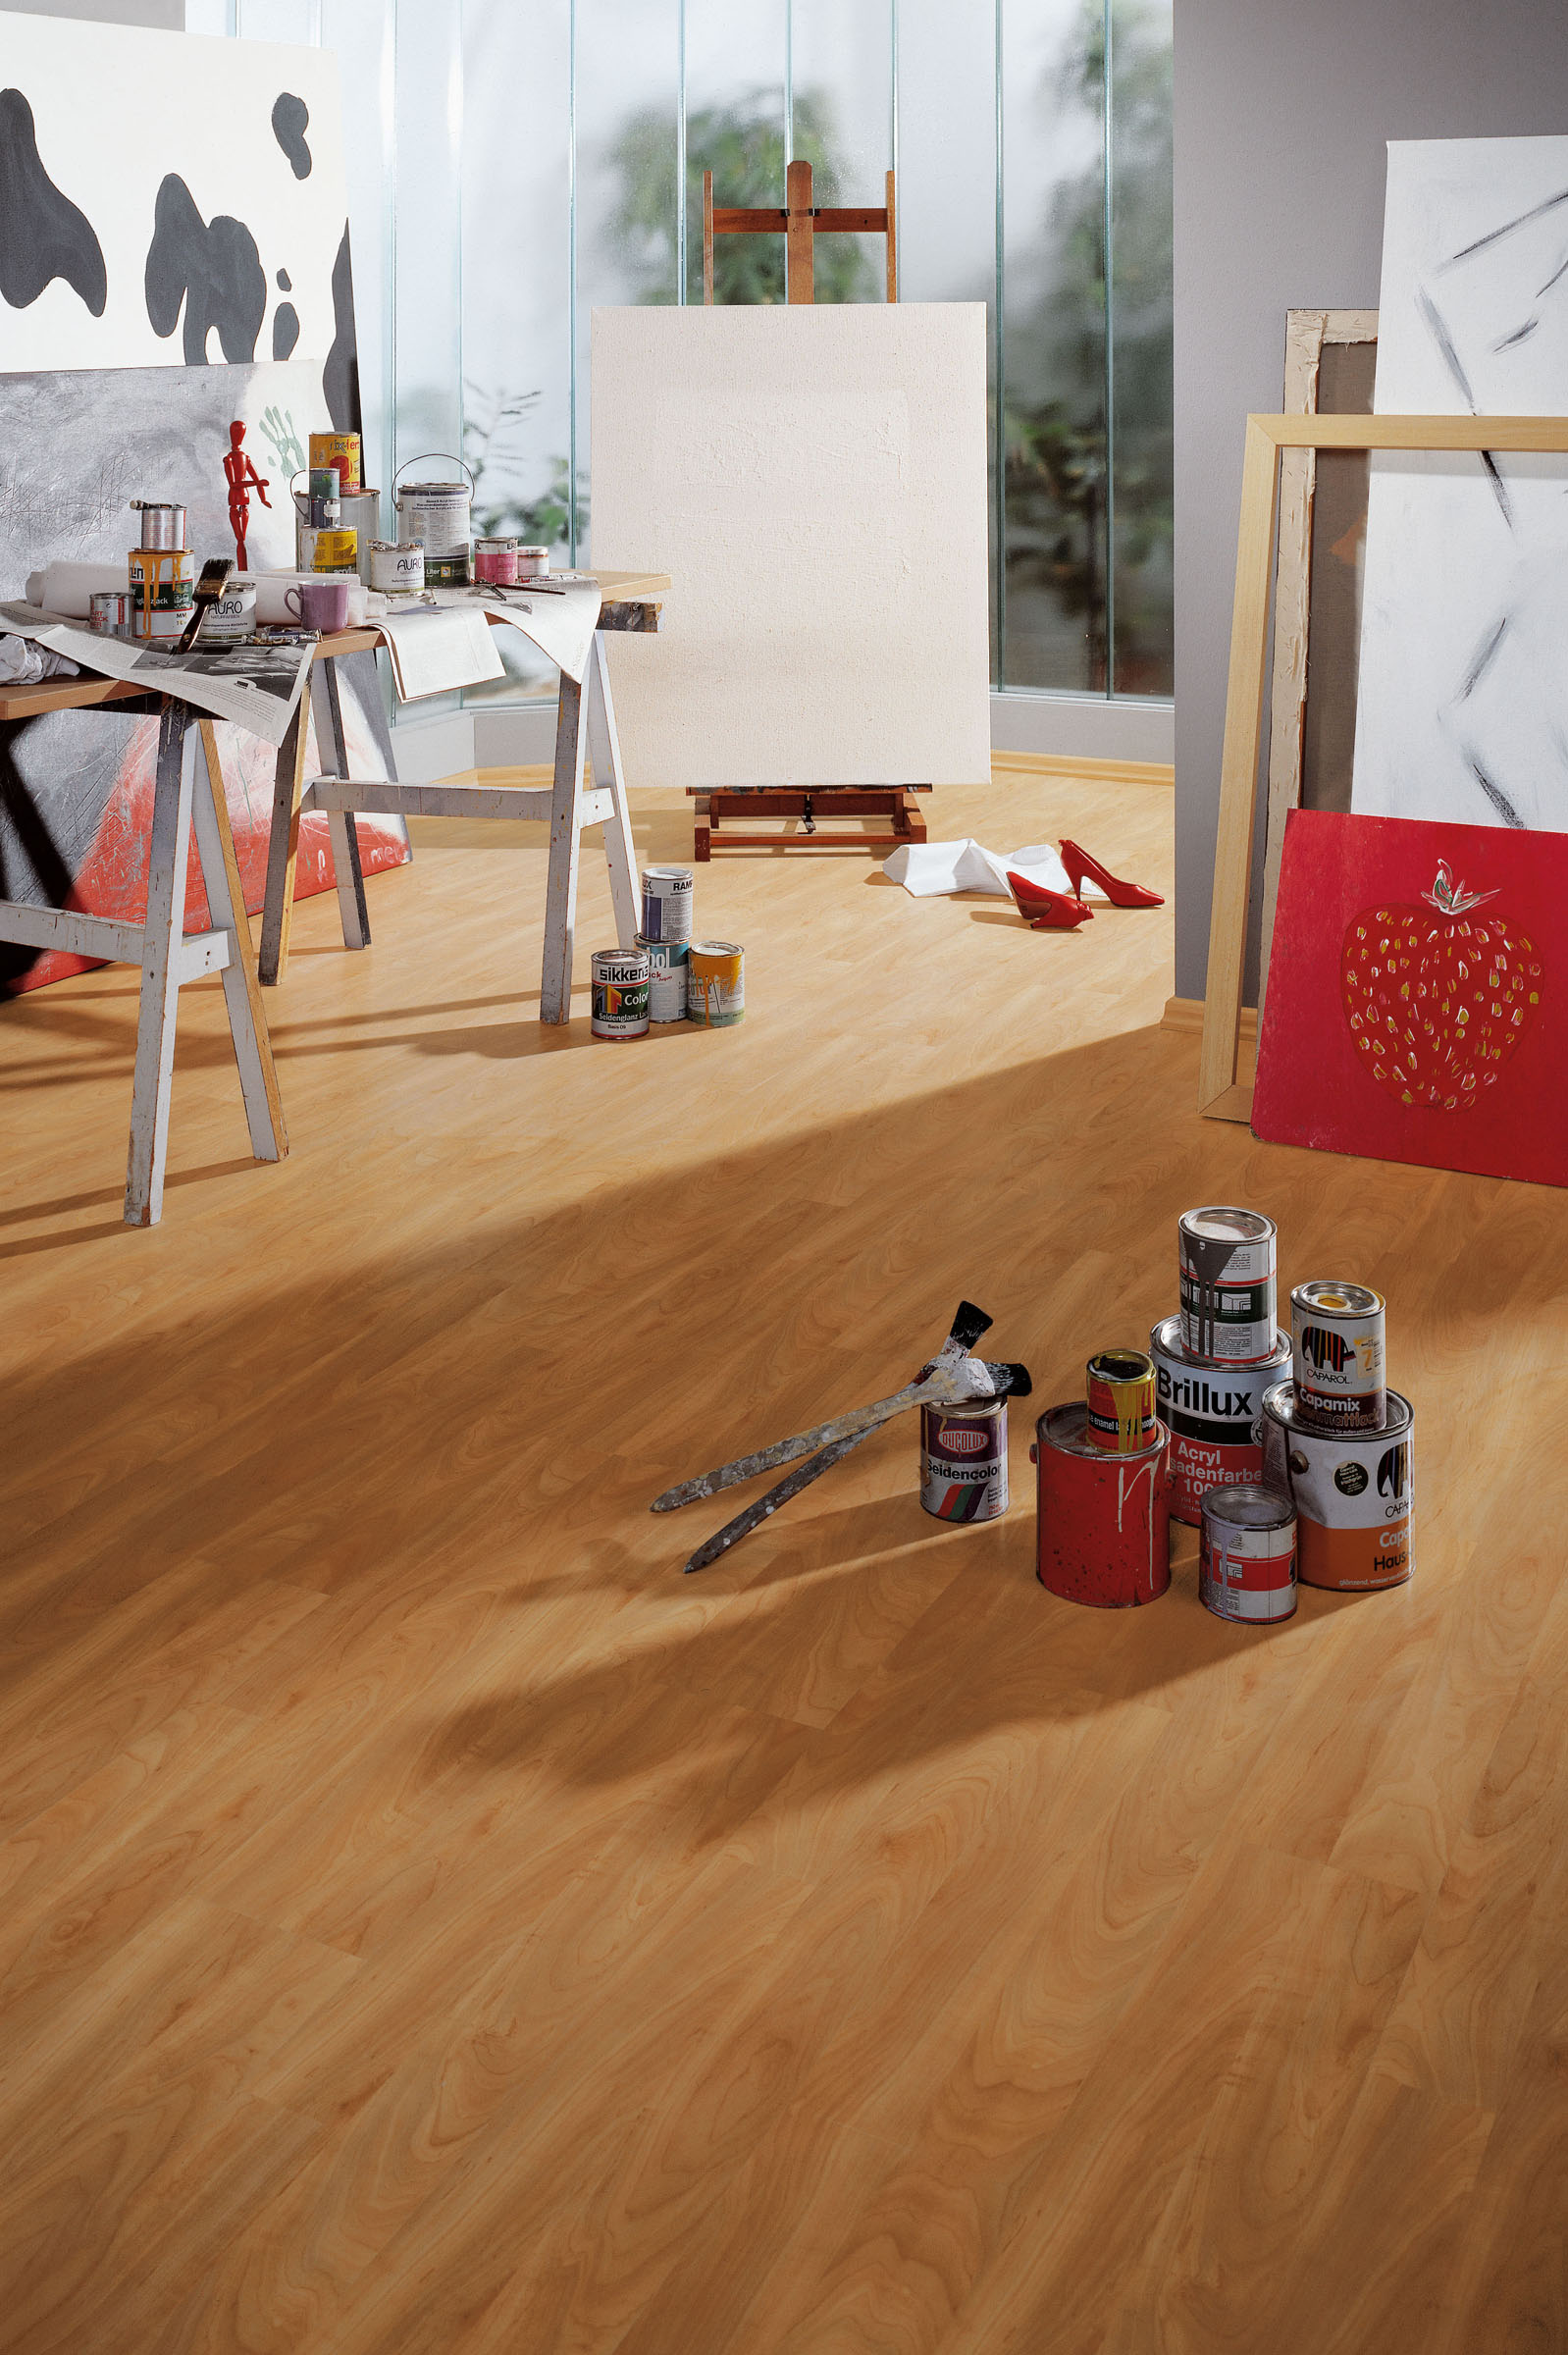 Laminate Flooring And The Ottomans Or Old